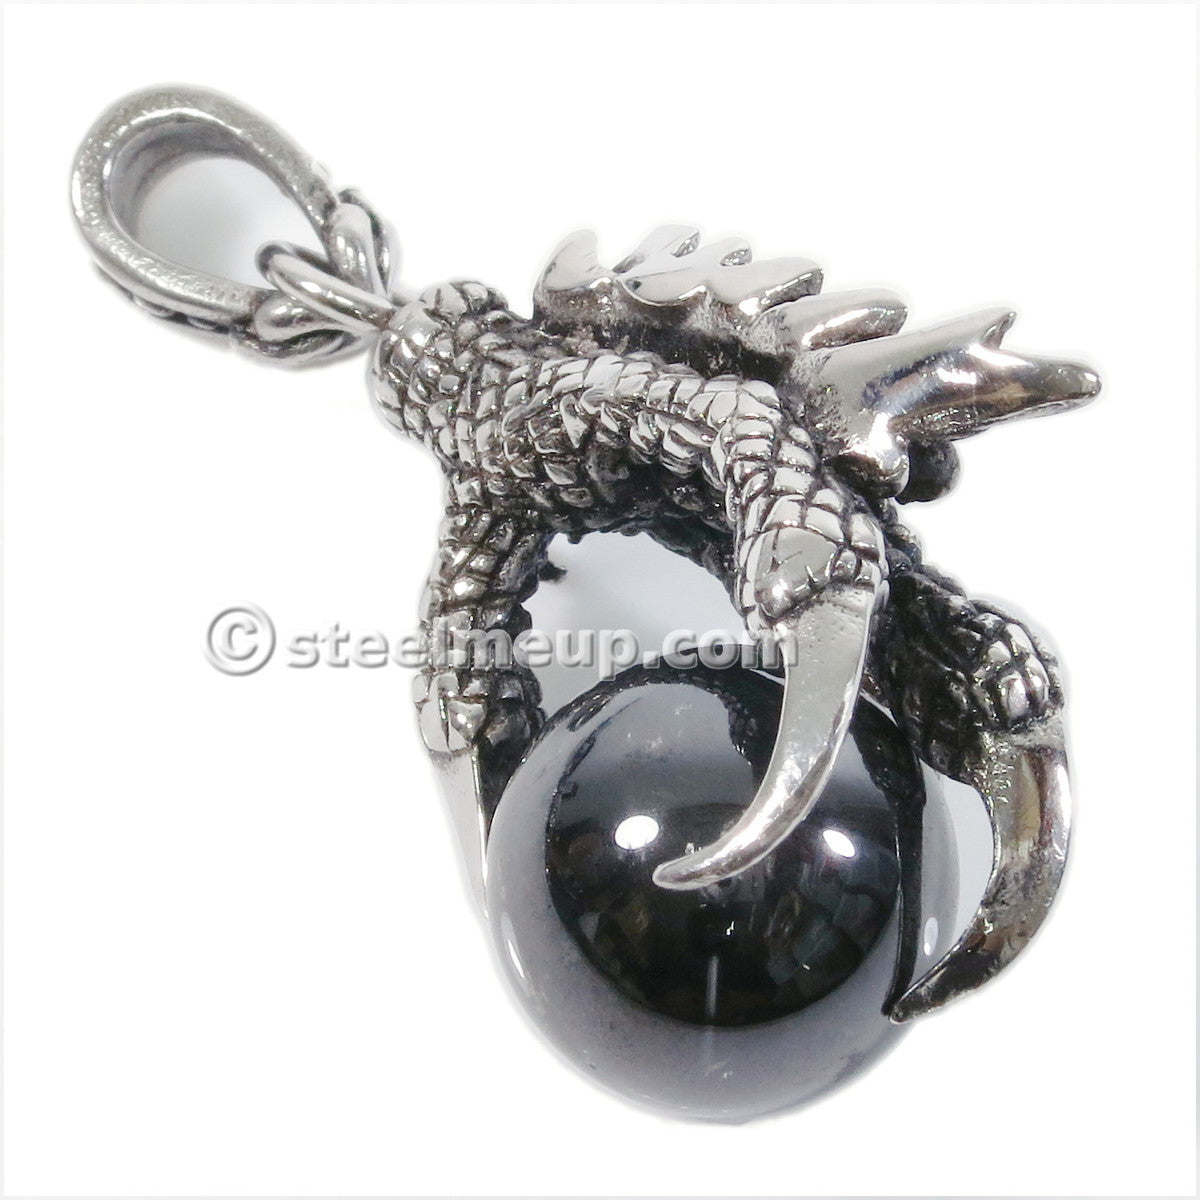 Stainless Steel Silver Dragon Claw Black Cubic Zircon Biker Pendant Necklace